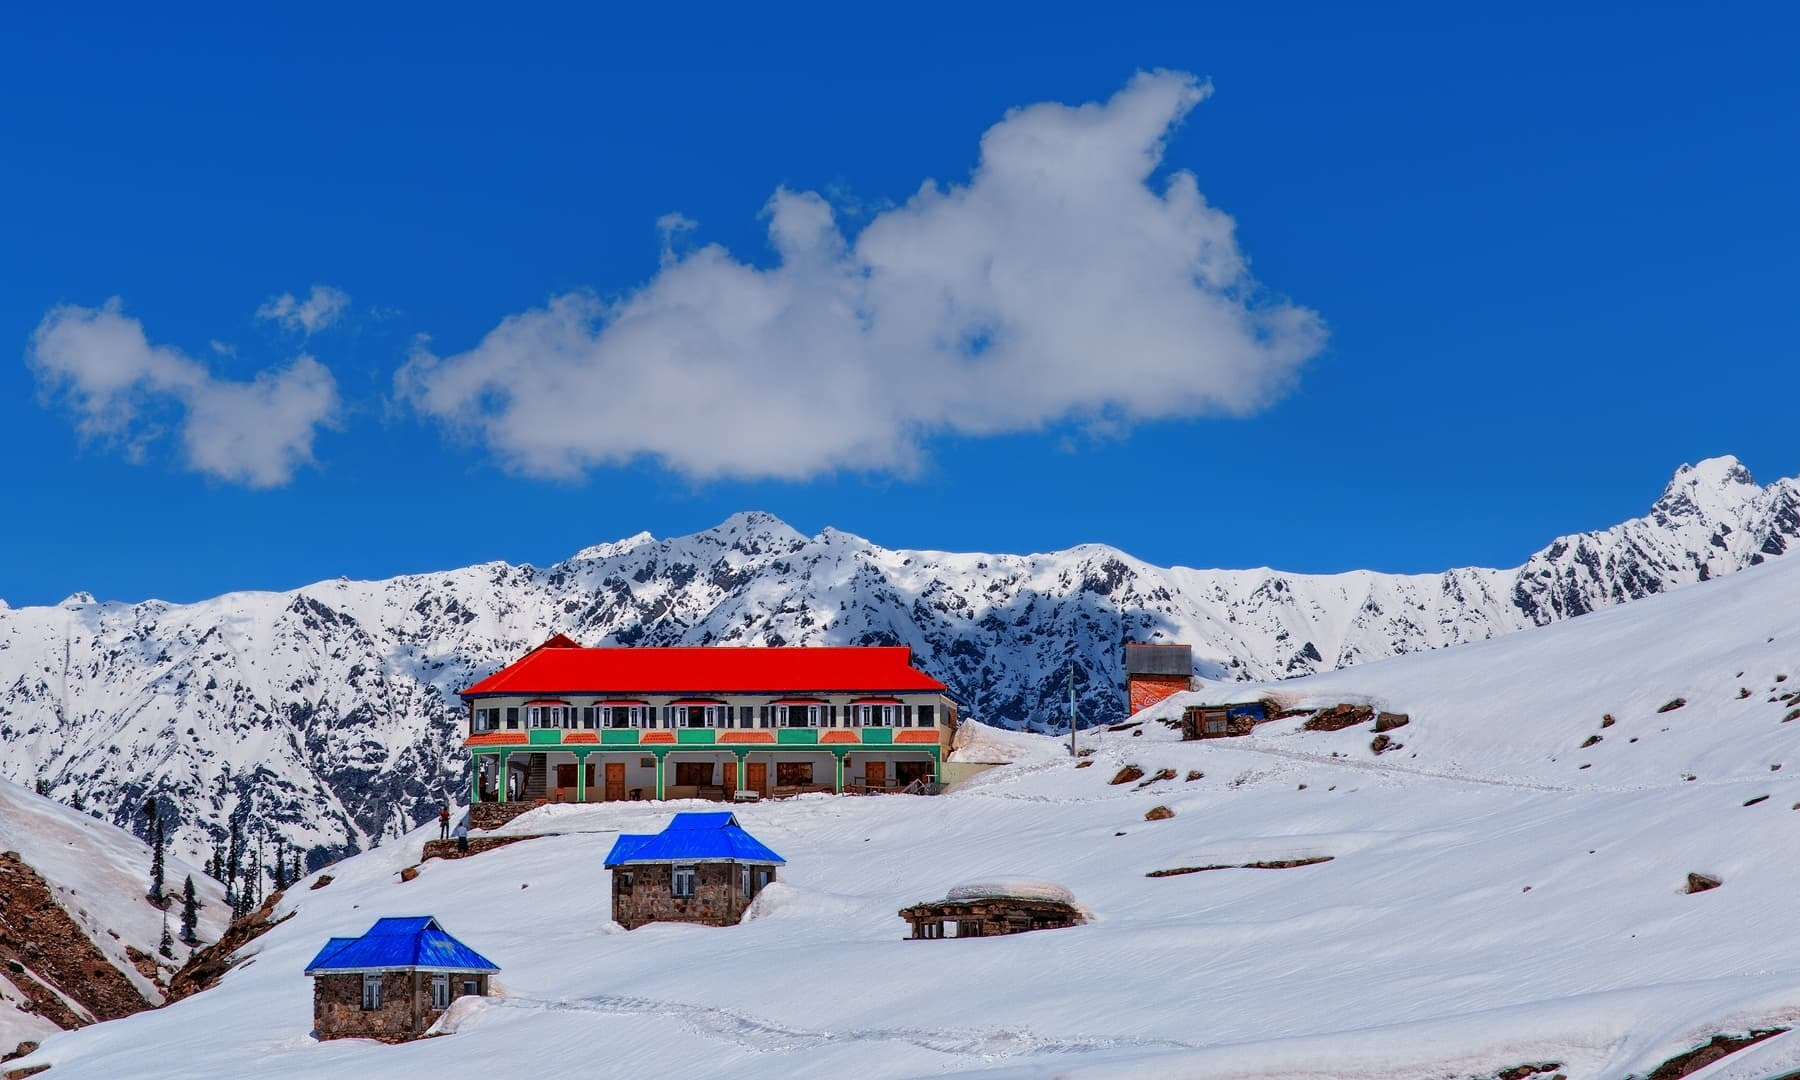 Snow, dry fruit and bonfires: 12 pictures that define winter in Pakistan